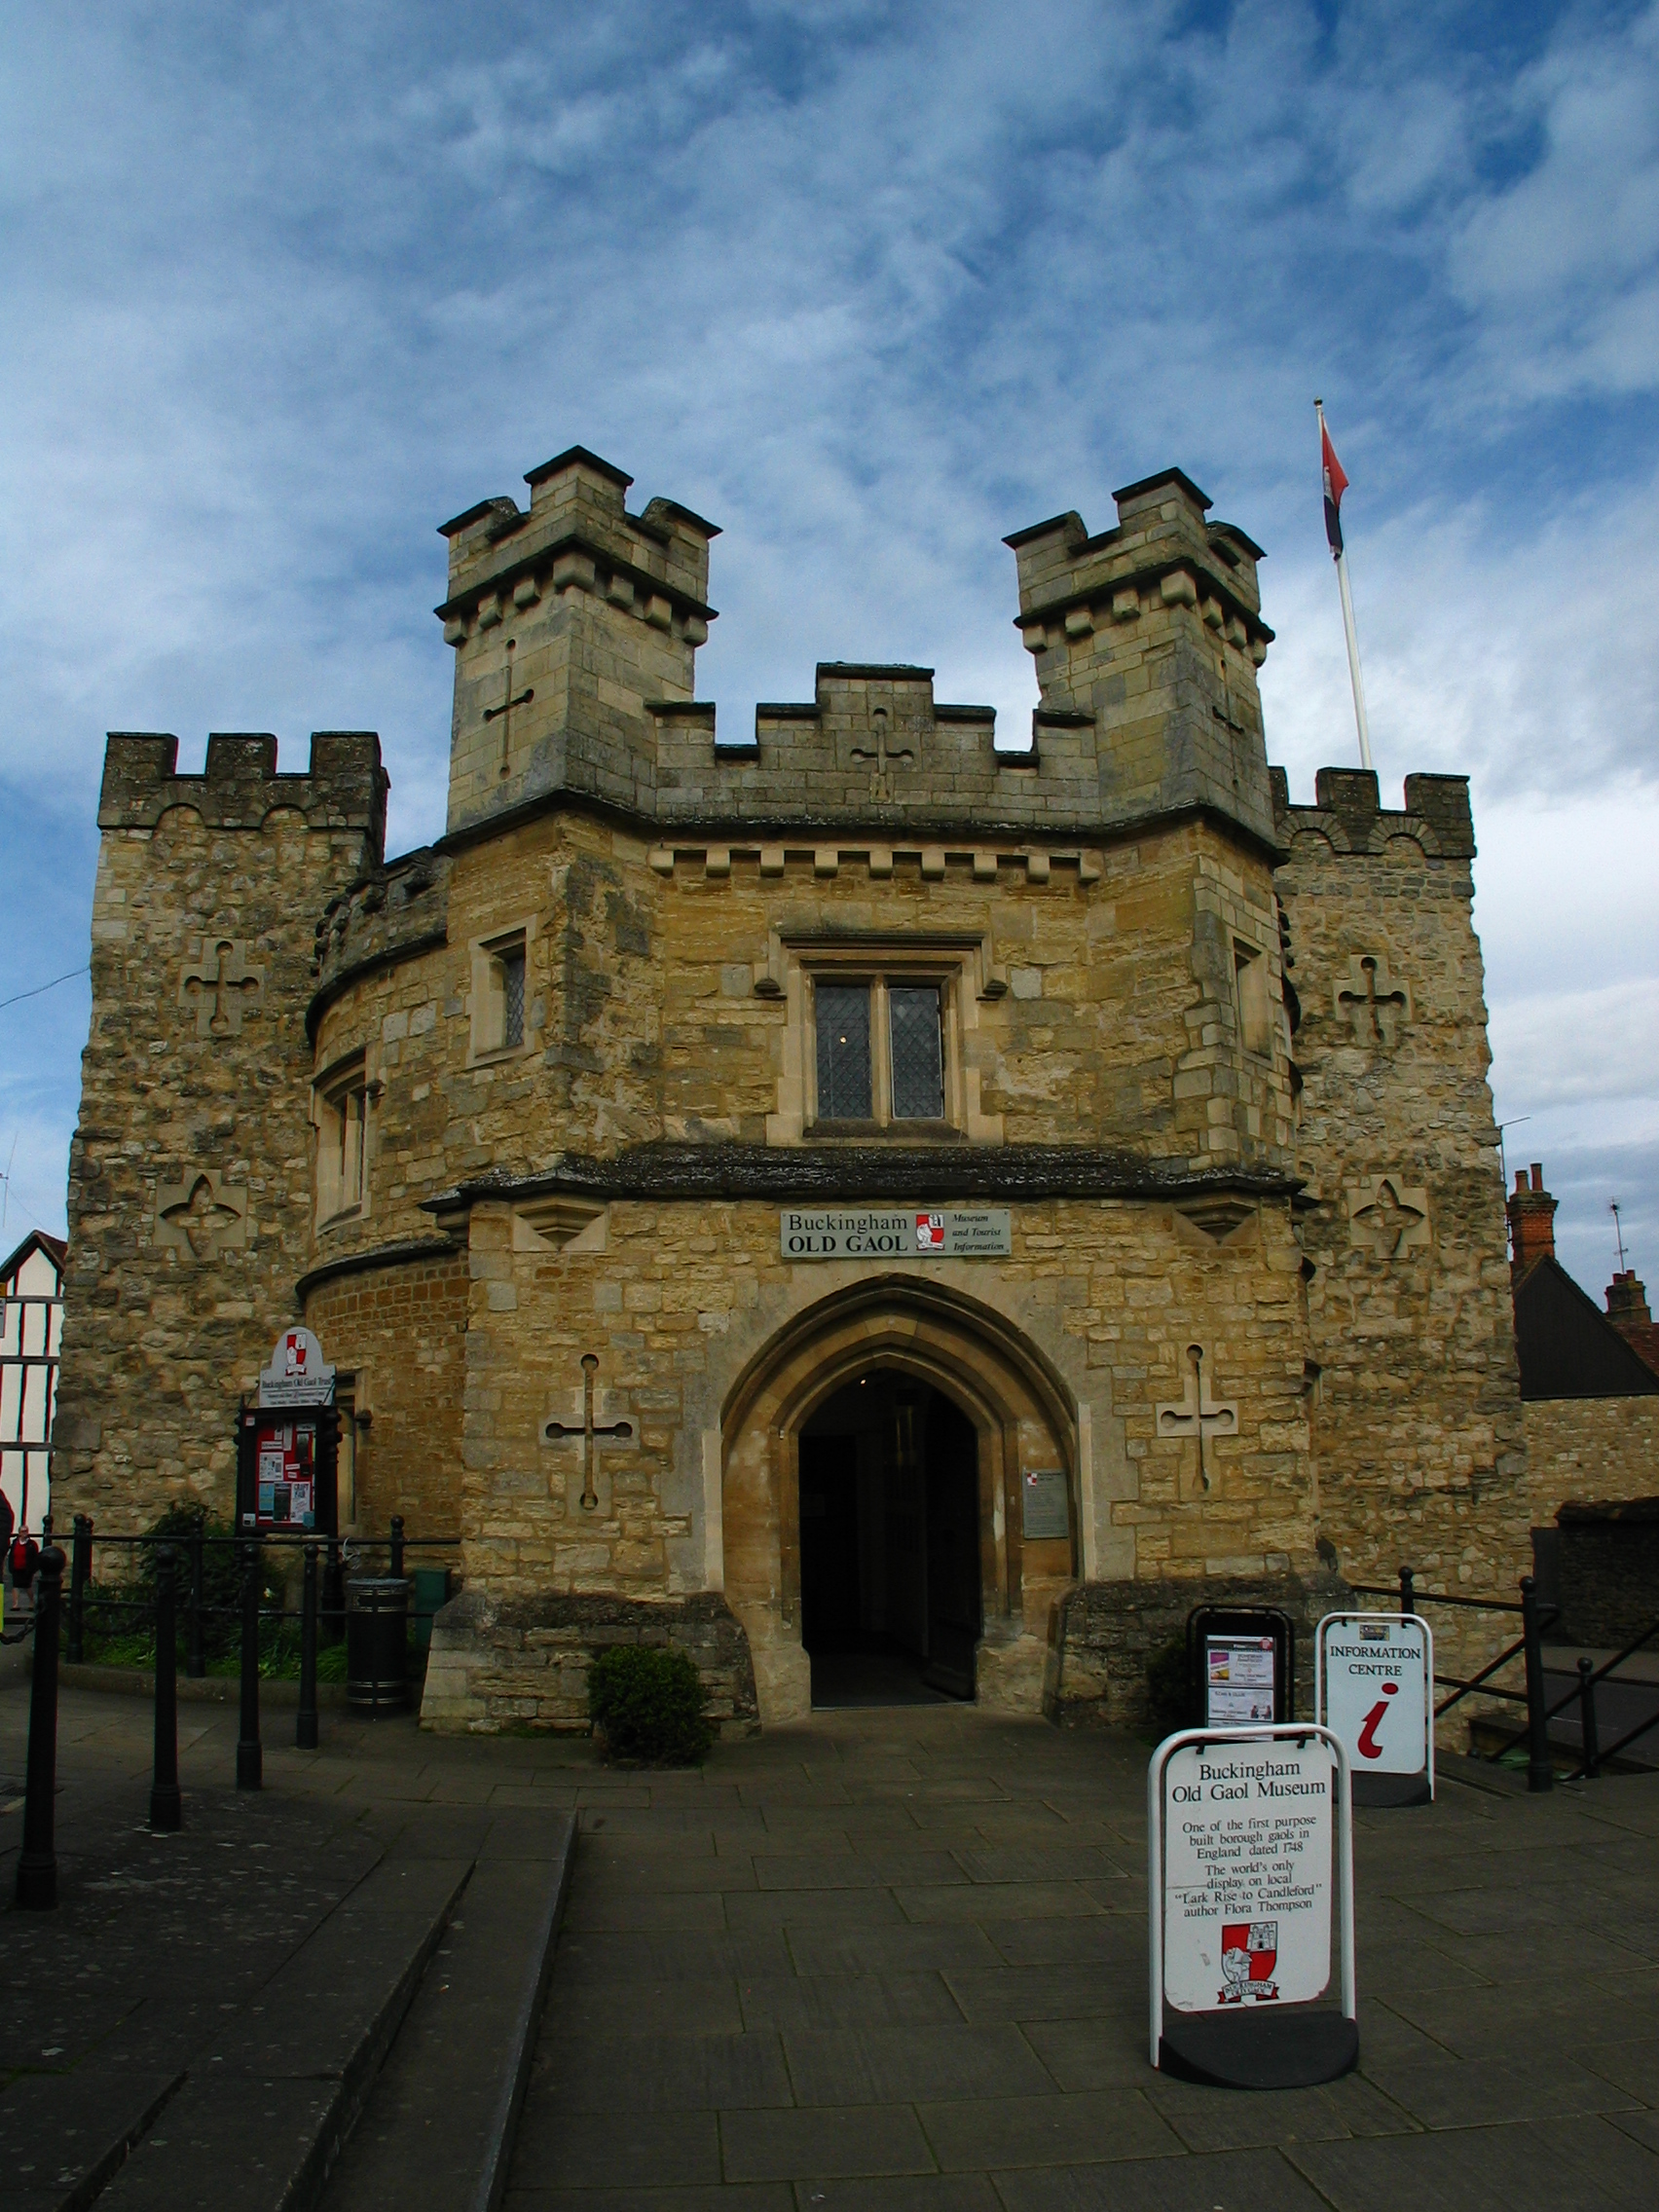 The Old Gaol.JPG